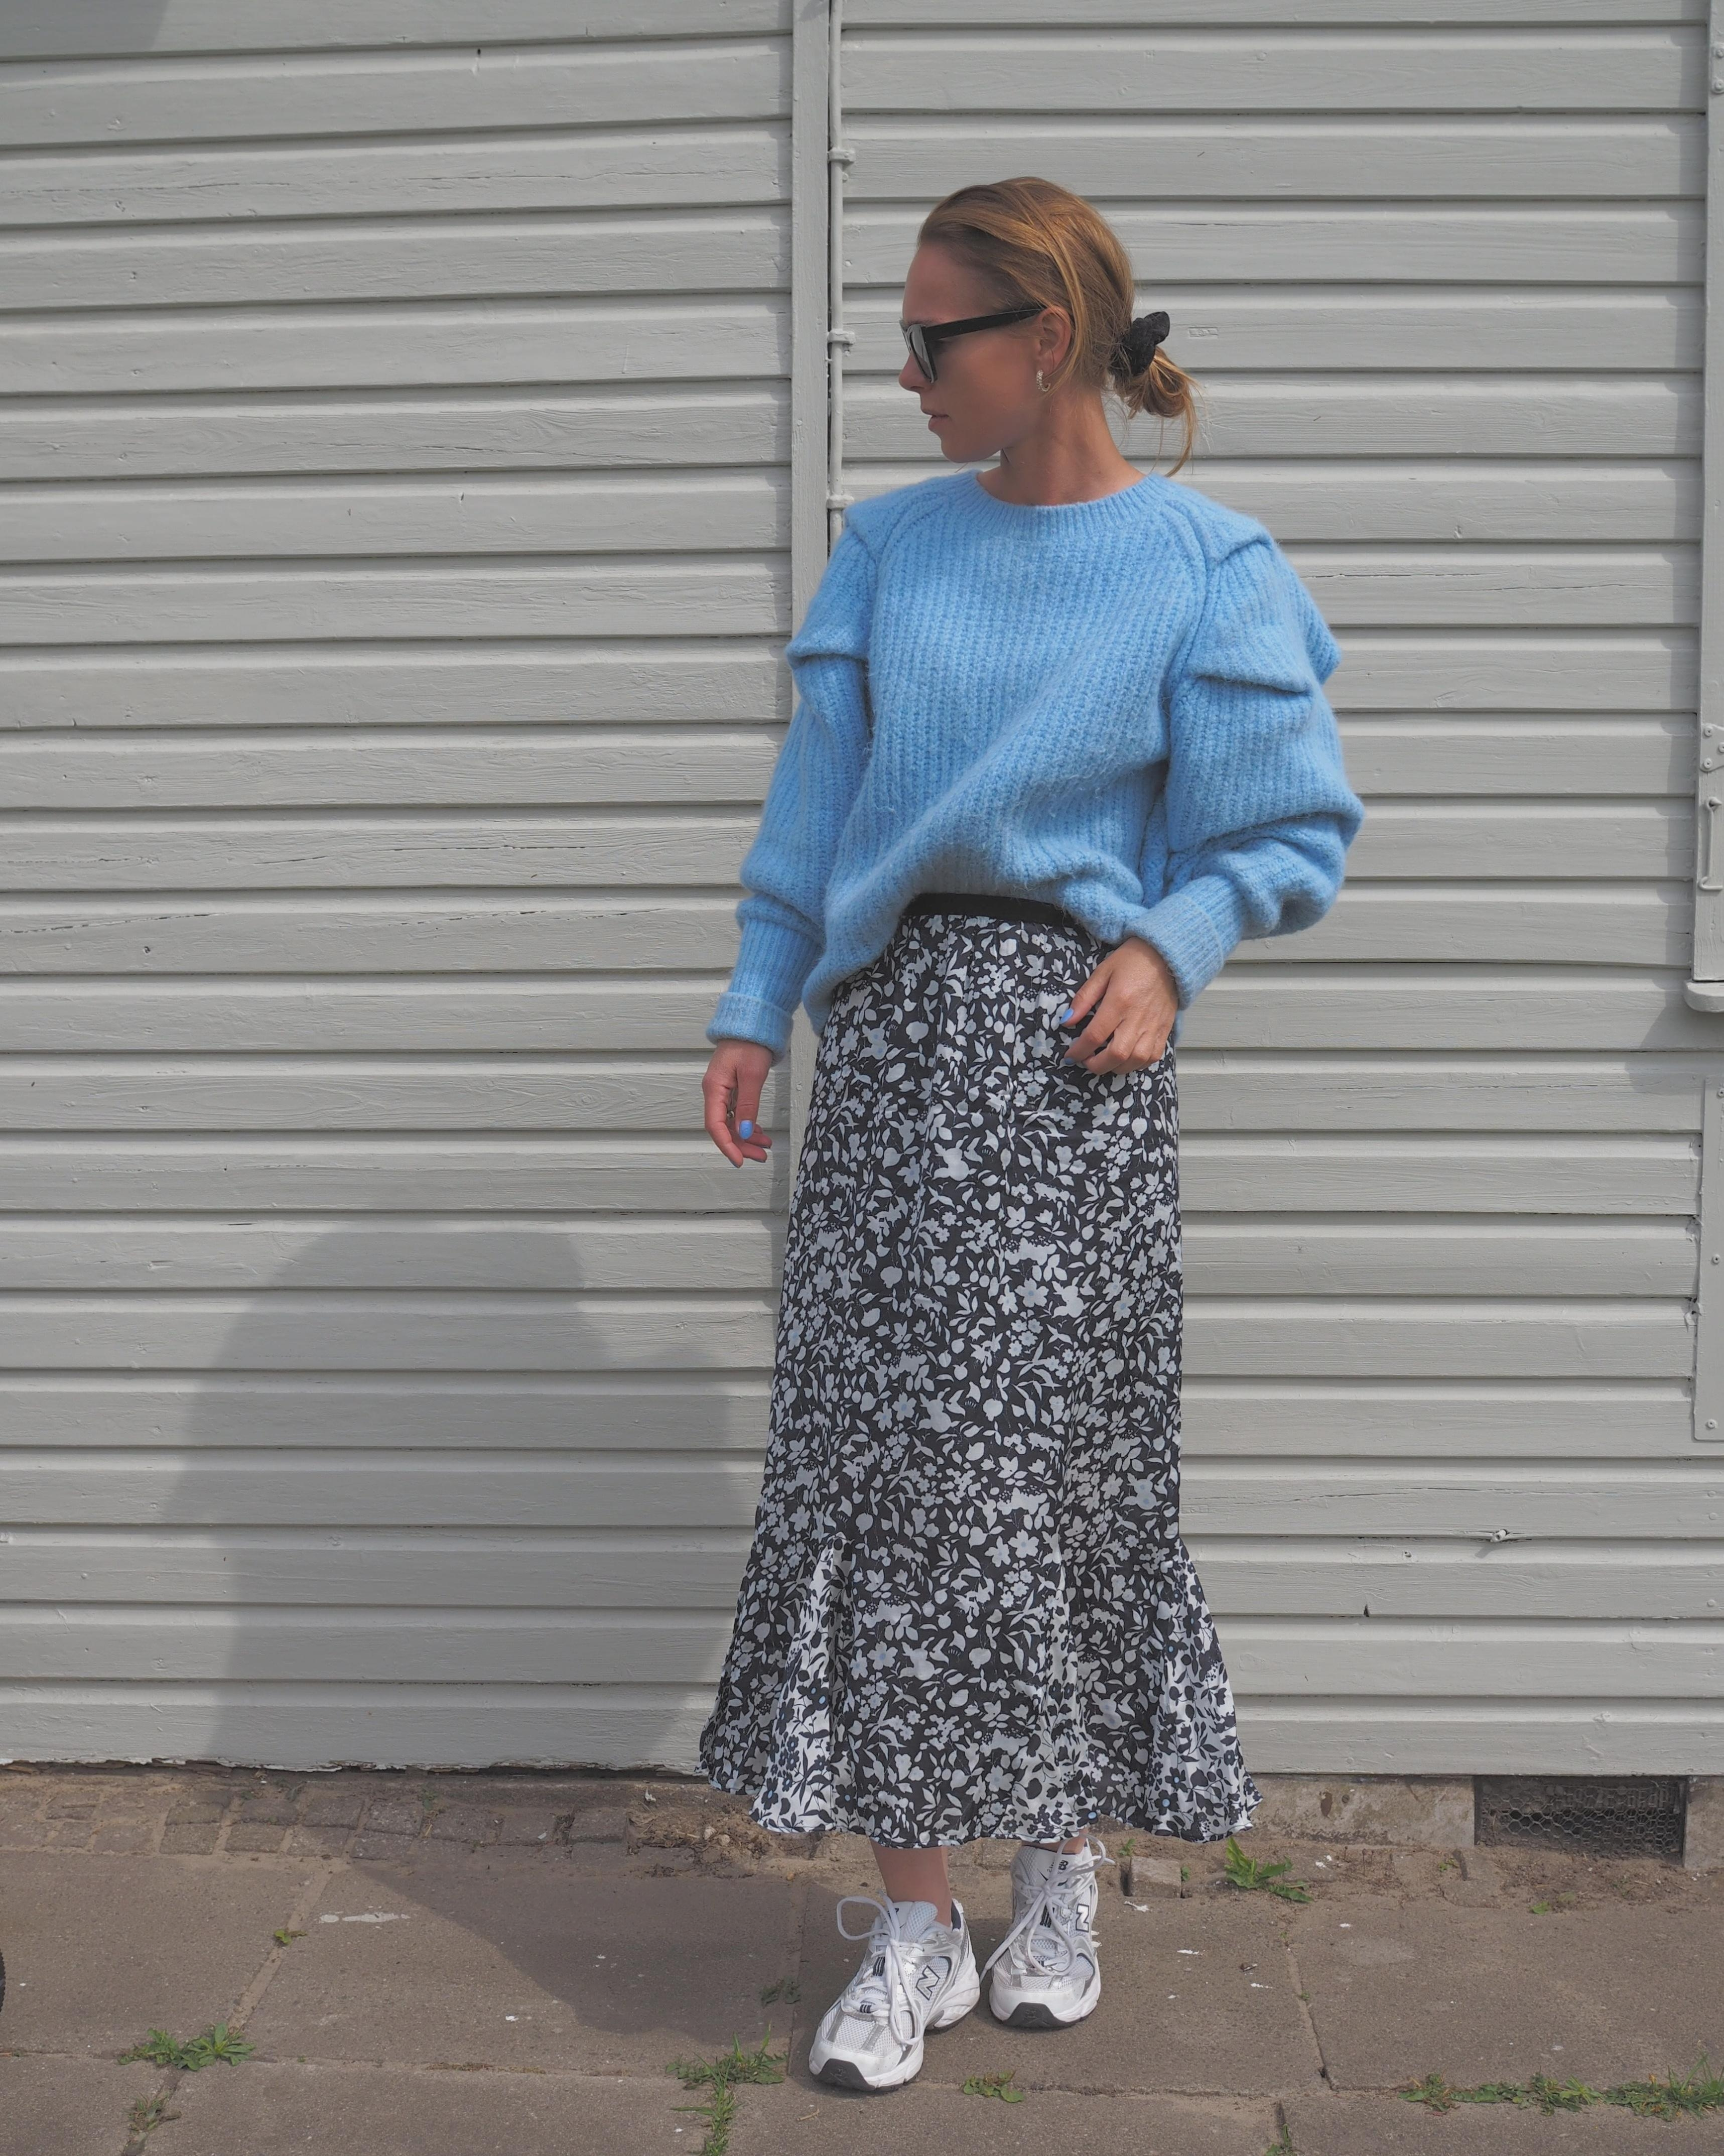 💙🌼 #skirt #fashioncrush #sneakers #blumenrock #rock #knit #schrebergartenliebe #laube